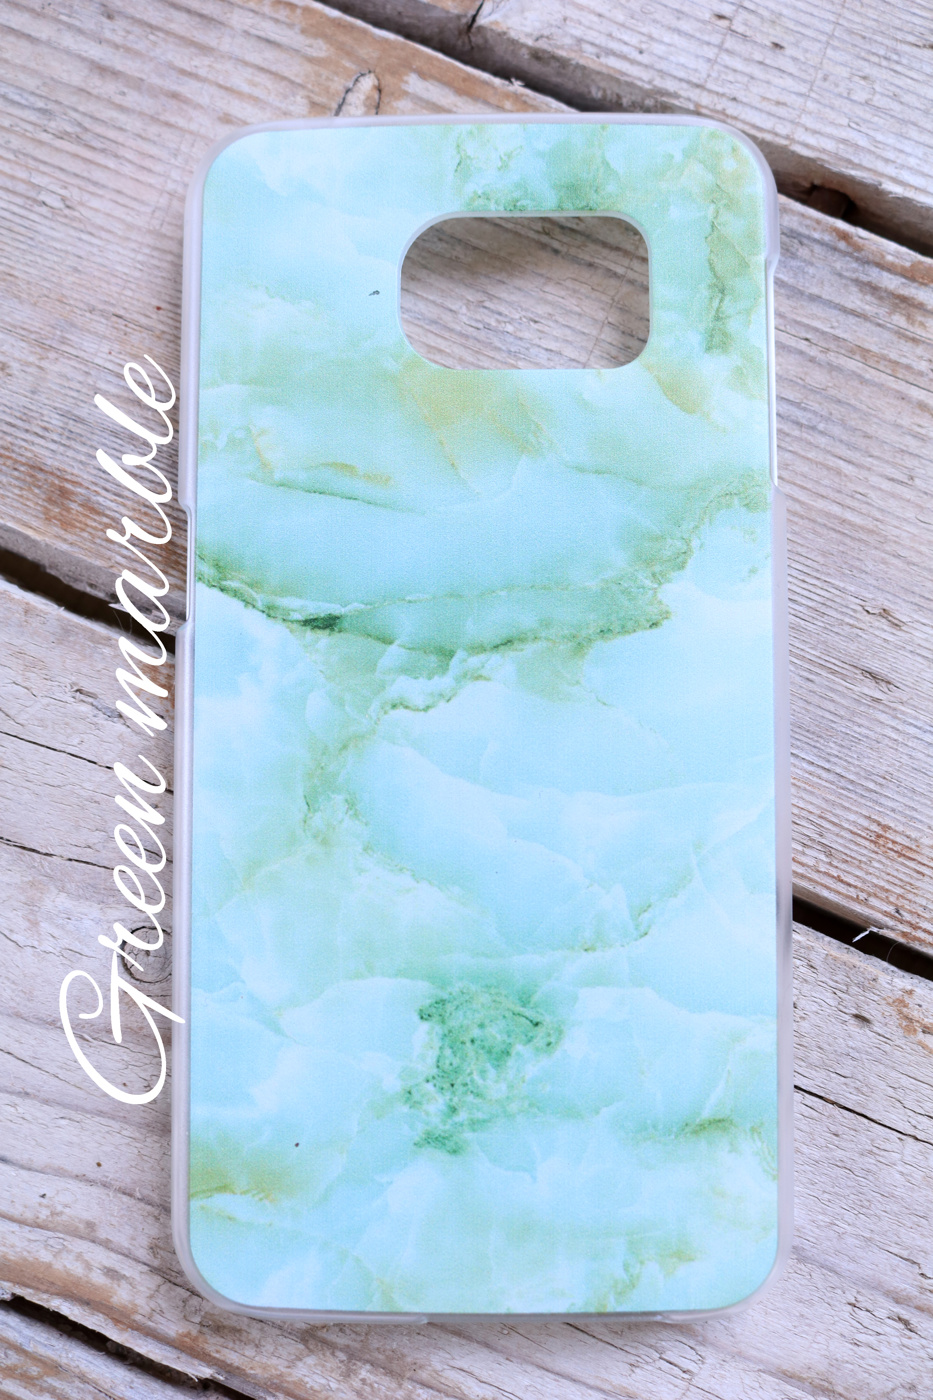 Green marble s6